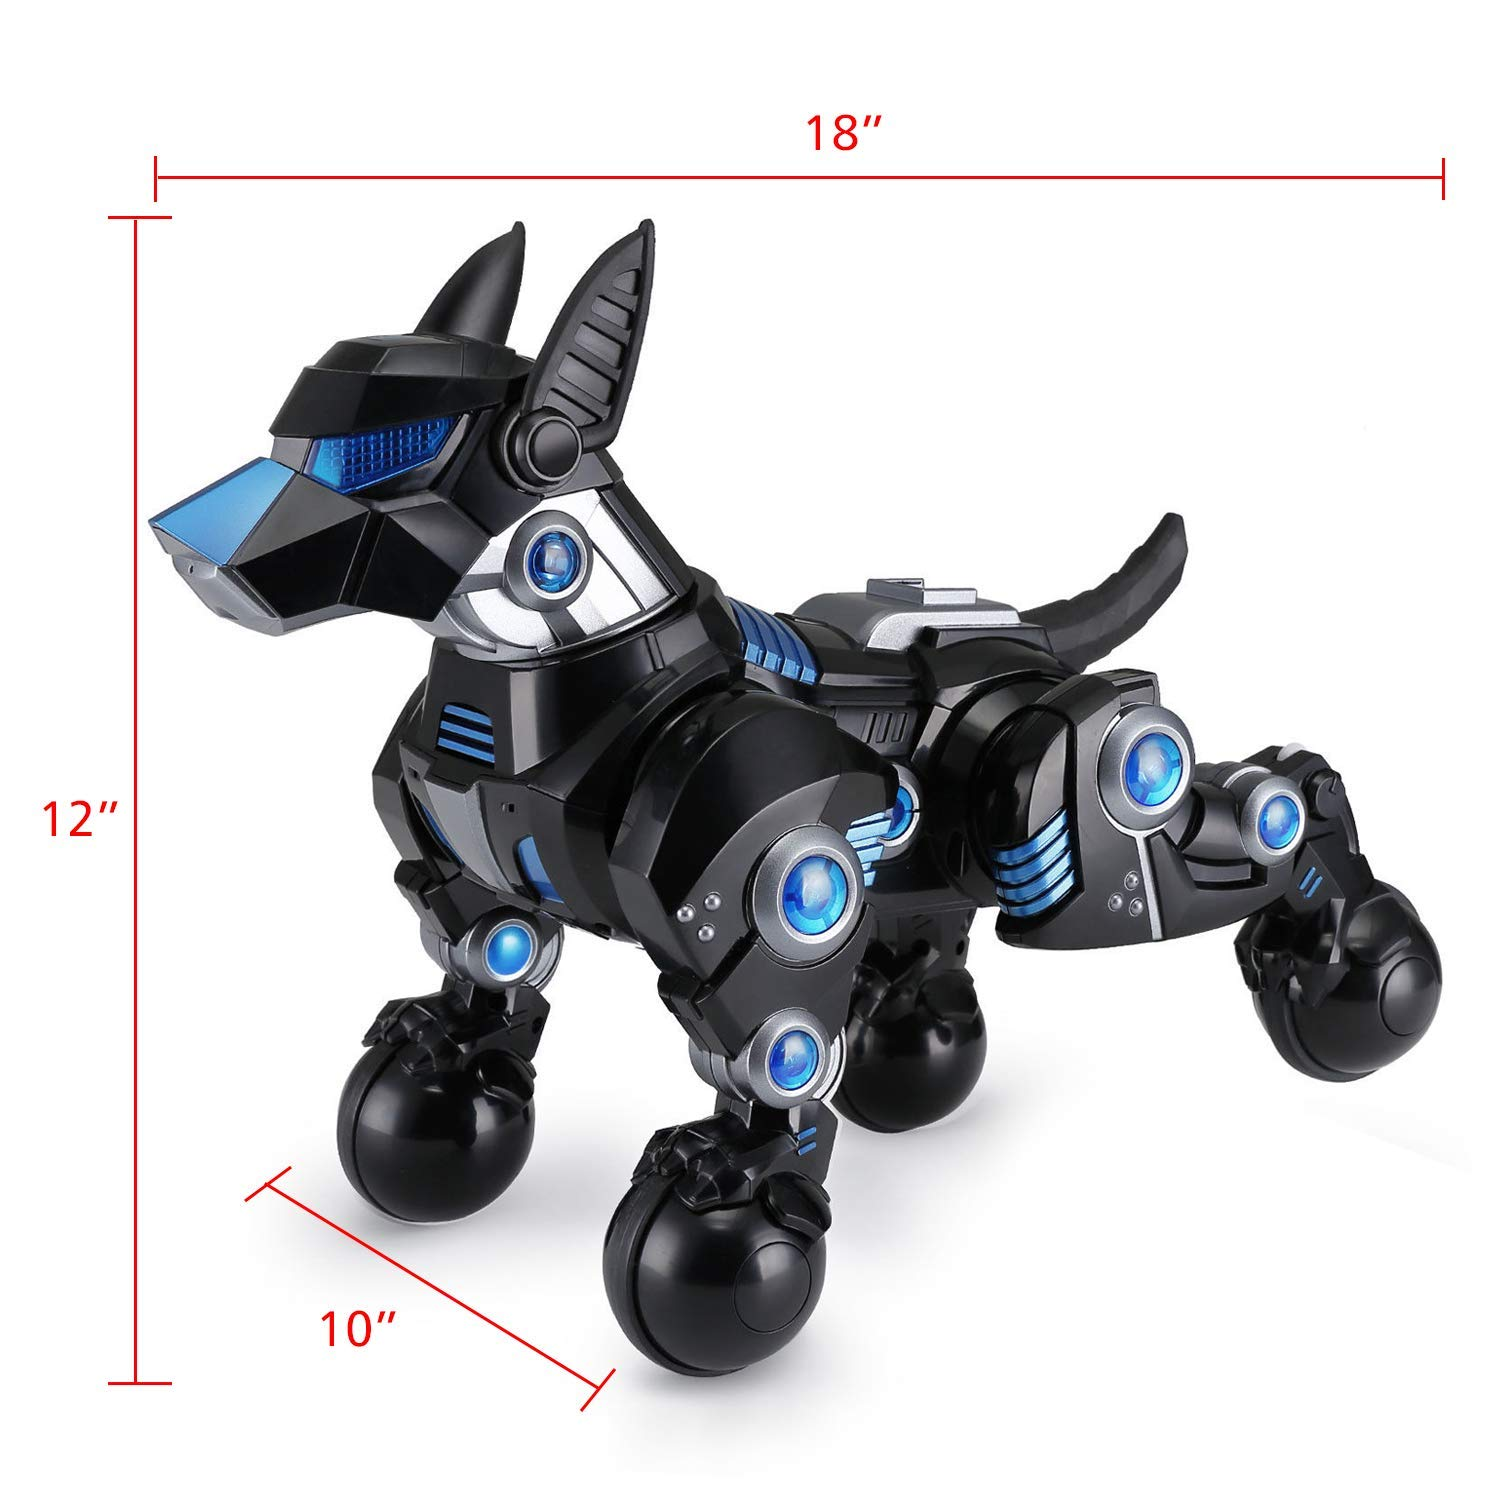 Modern-Depo Rastar Intelligent Robot Dog with Remote Control for Kids, USB Charging, Dancing Demo - Black by Modern-Depo (Image #3)